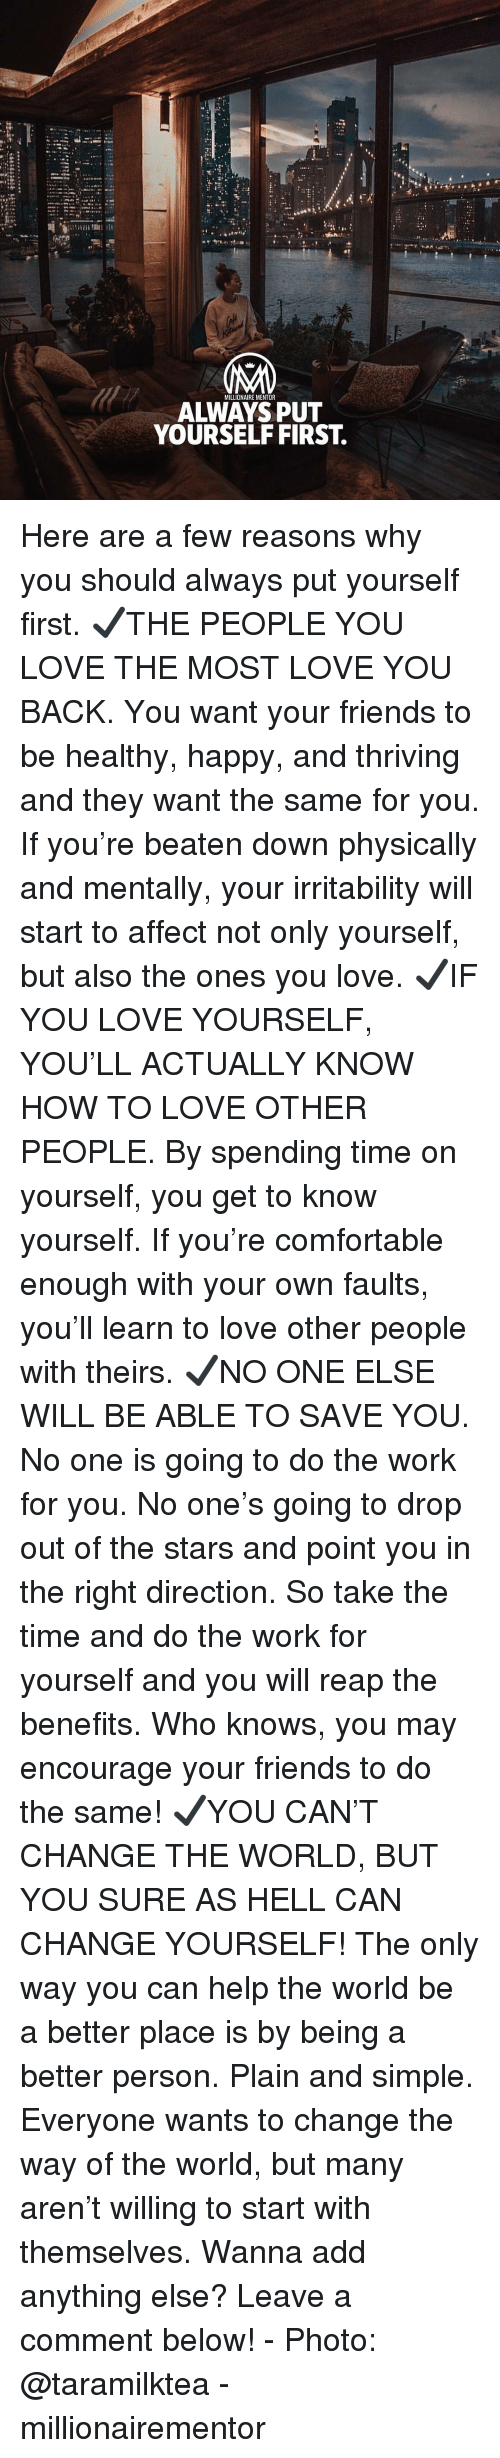 plain-and-simple: NM  MILLIONAIRE MENTOR  ALWAYS PUT  YOURSELF FIRST. Here are a few reasons why you should always put yourself first. ✔️THE PEOPLE YOU LOVE THE MOST LOVE YOU BACK. You want your friends to be healthy, happy, and thriving and they want the same for you. If you're beaten down physically and mentally, your irritability will start to affect not only yourself, but also the ones you love. ✔️IF YOU LOVE YOURSELF, YOU'LL ACTUALLY KNOW HOW TO LOVE OTHER PEOPLE. By spending time on yourself, you get to know yourself. If you're comfortable enough with your own faults, you'll learn to love other people with theirs. ✔️NO ONE ELSE WILL BE ABLE TO SAVE YOU. No one is going to do the work for you. No one's going to drop out of the stars and point you in the right direction. So take the time and do the work for yourself and you will reap the benefits. Who knows, you may encourage your friends to do the same! ✔️YOU CAN'T CHANGE THE WORLD, BUT YOU SURE AS HELL CAN CHANGE YOURSELF! The only way you can help the world be a better place is by being a better person. Plain and simple. Everyone wants to change the way of the world, but many aren't willing to start with themselves. Wanna add anything else? Leave a comment below! - Photo: @taramilktea - millionairementor